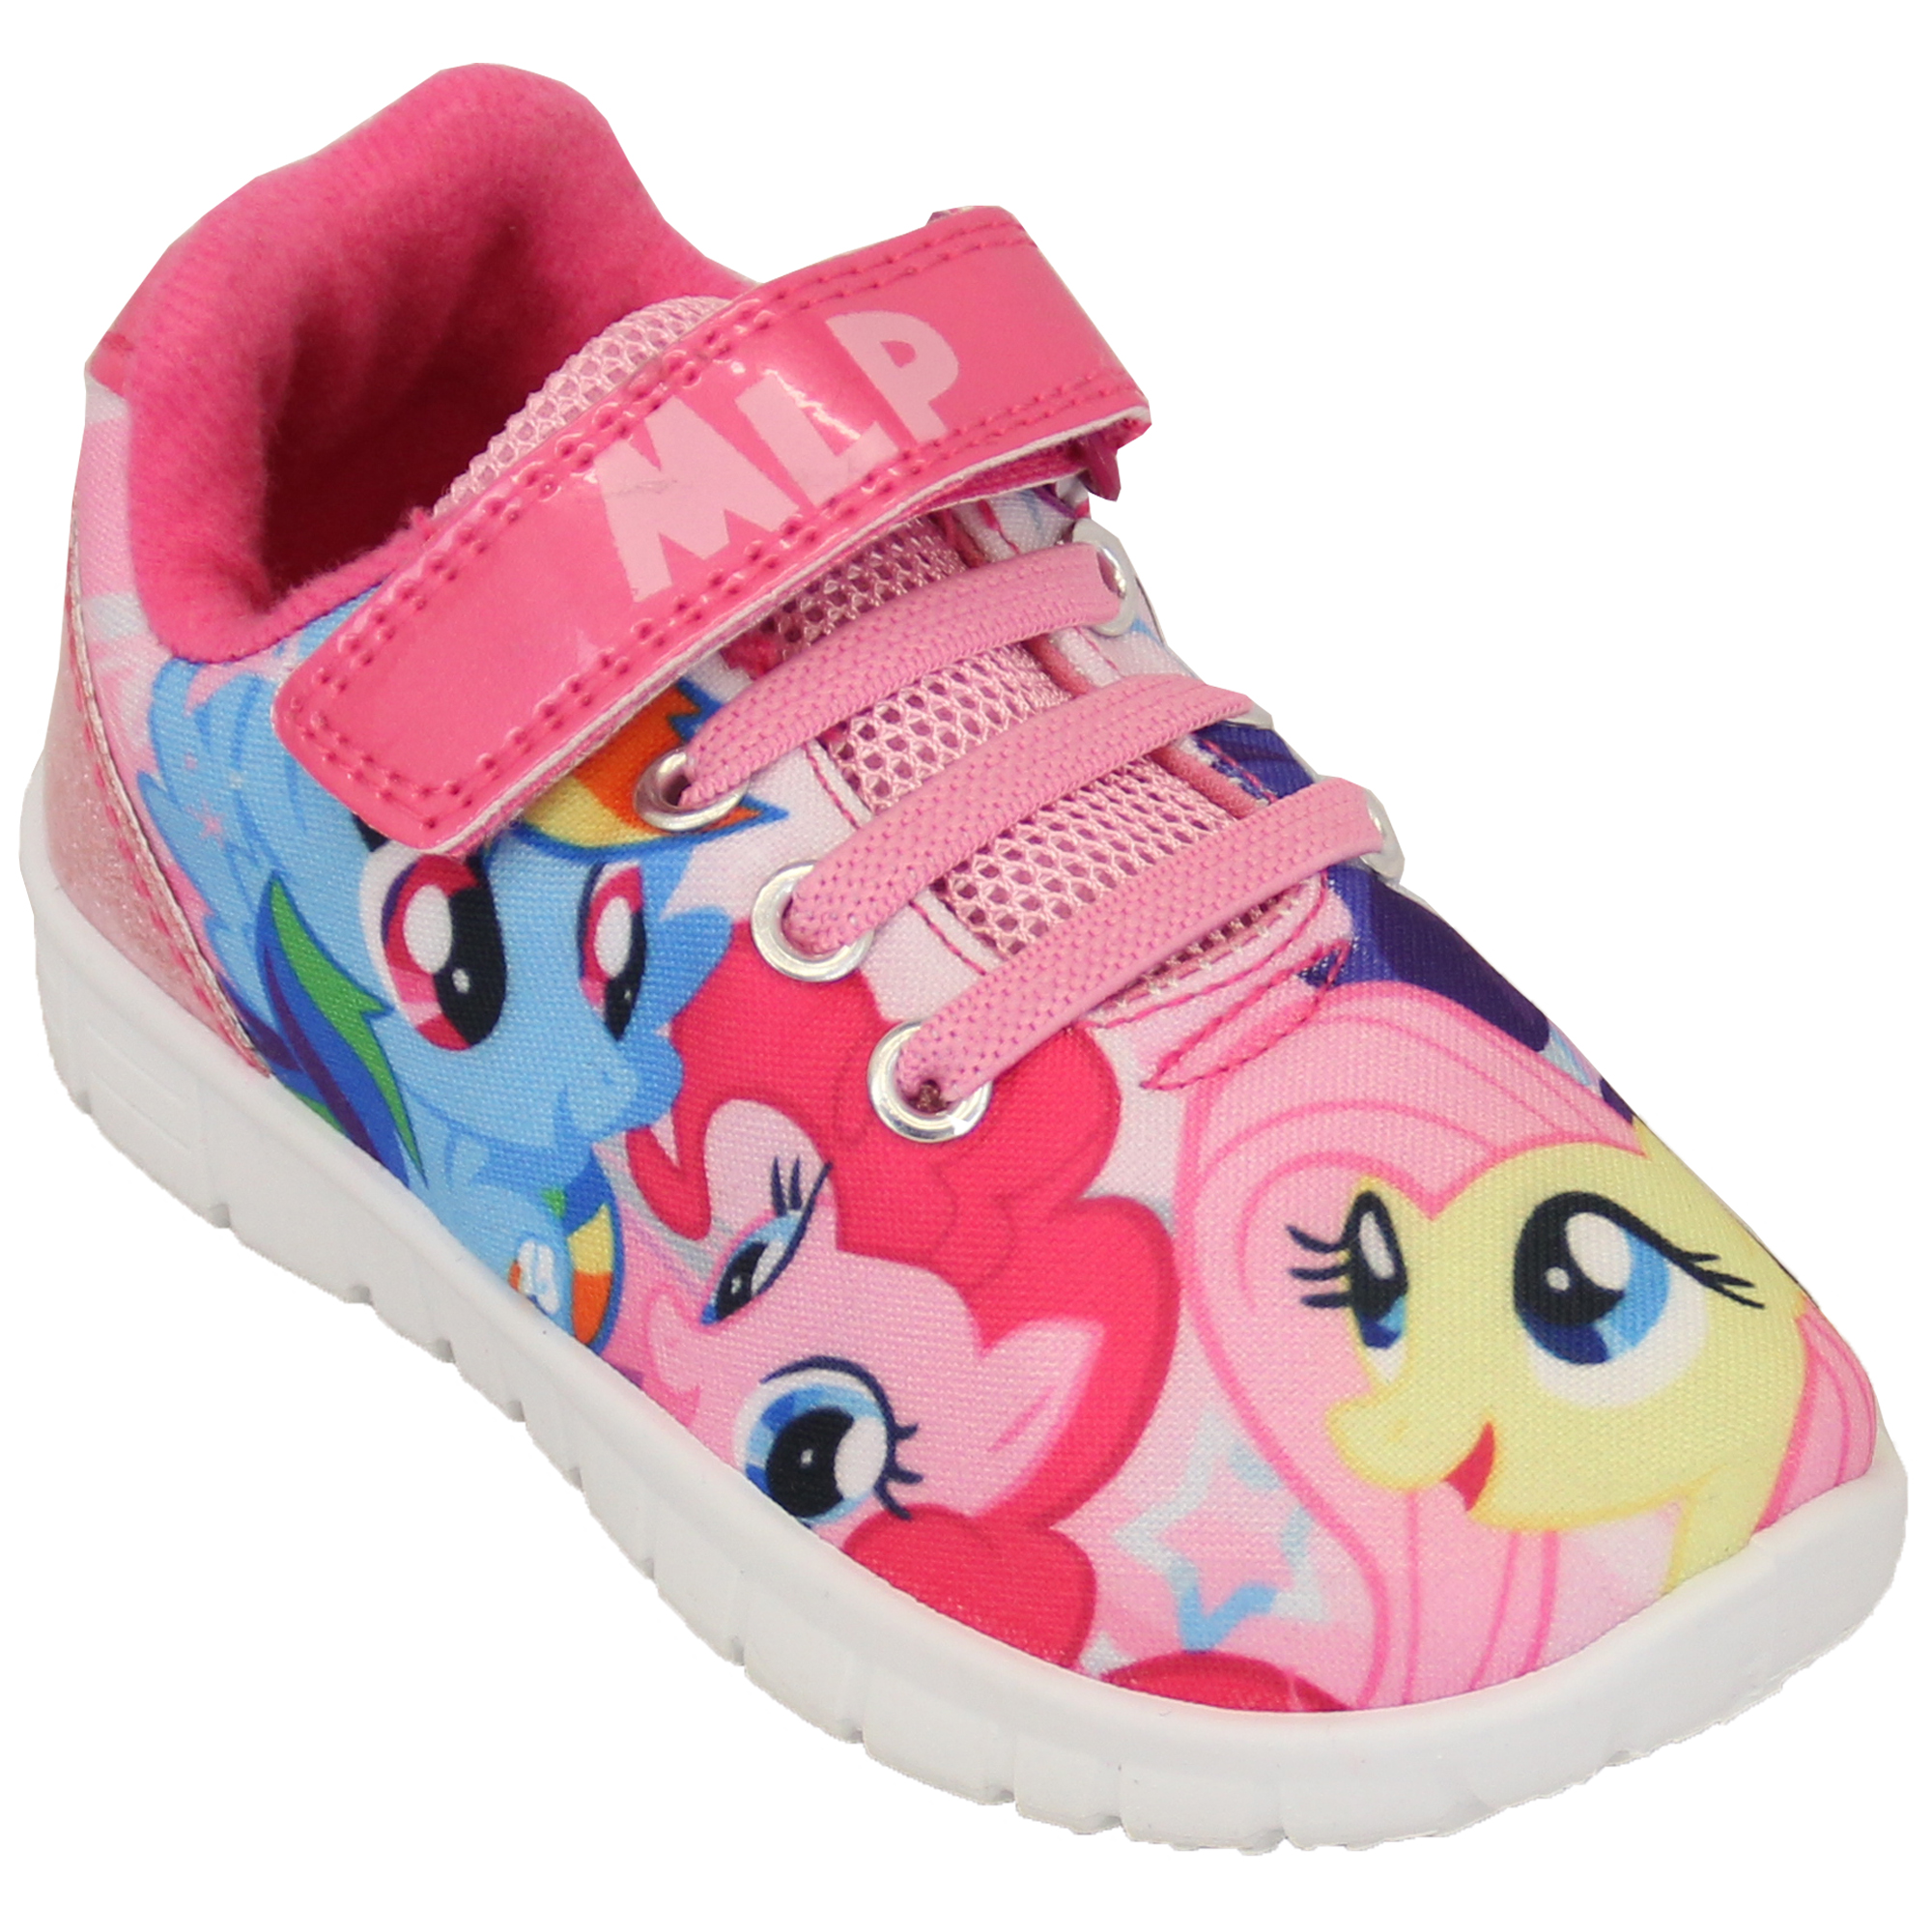 473966c4aaf3 Girls Trainers My Little Pony MLP Kids Shoes Lace Up Pumps Cartoon ...